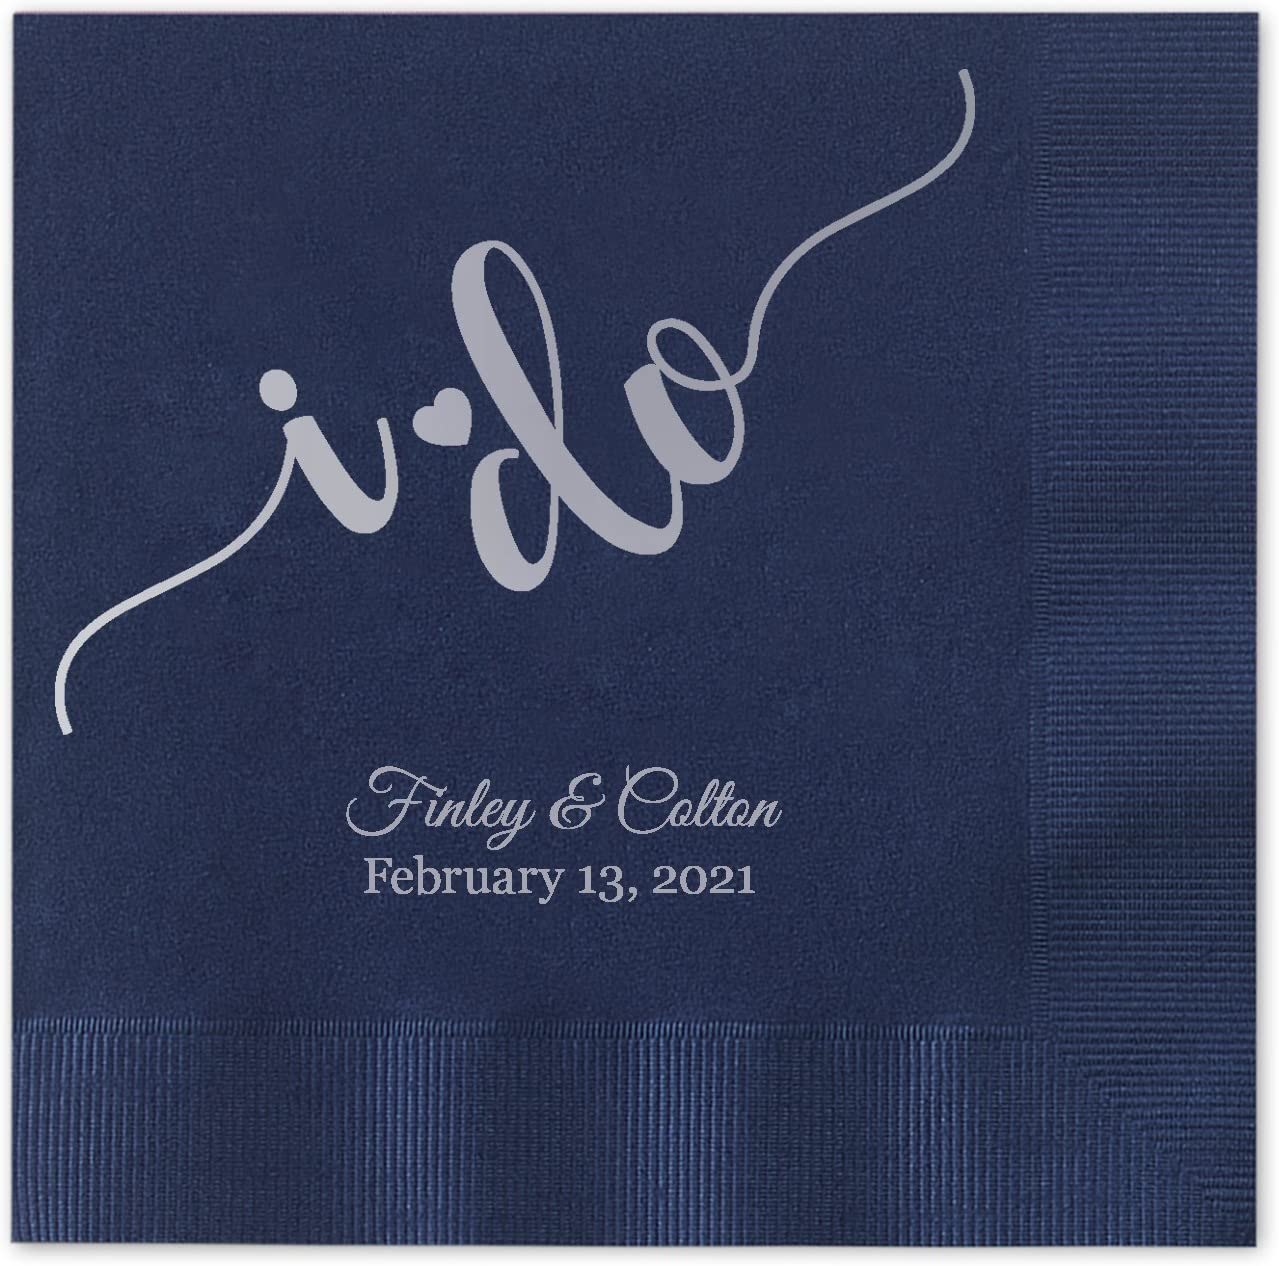 I do Calligraphy Personalized Beverage Cocktail Napkins - 100 Custom Printed Navy Blue Paper Napkins with choice of foil